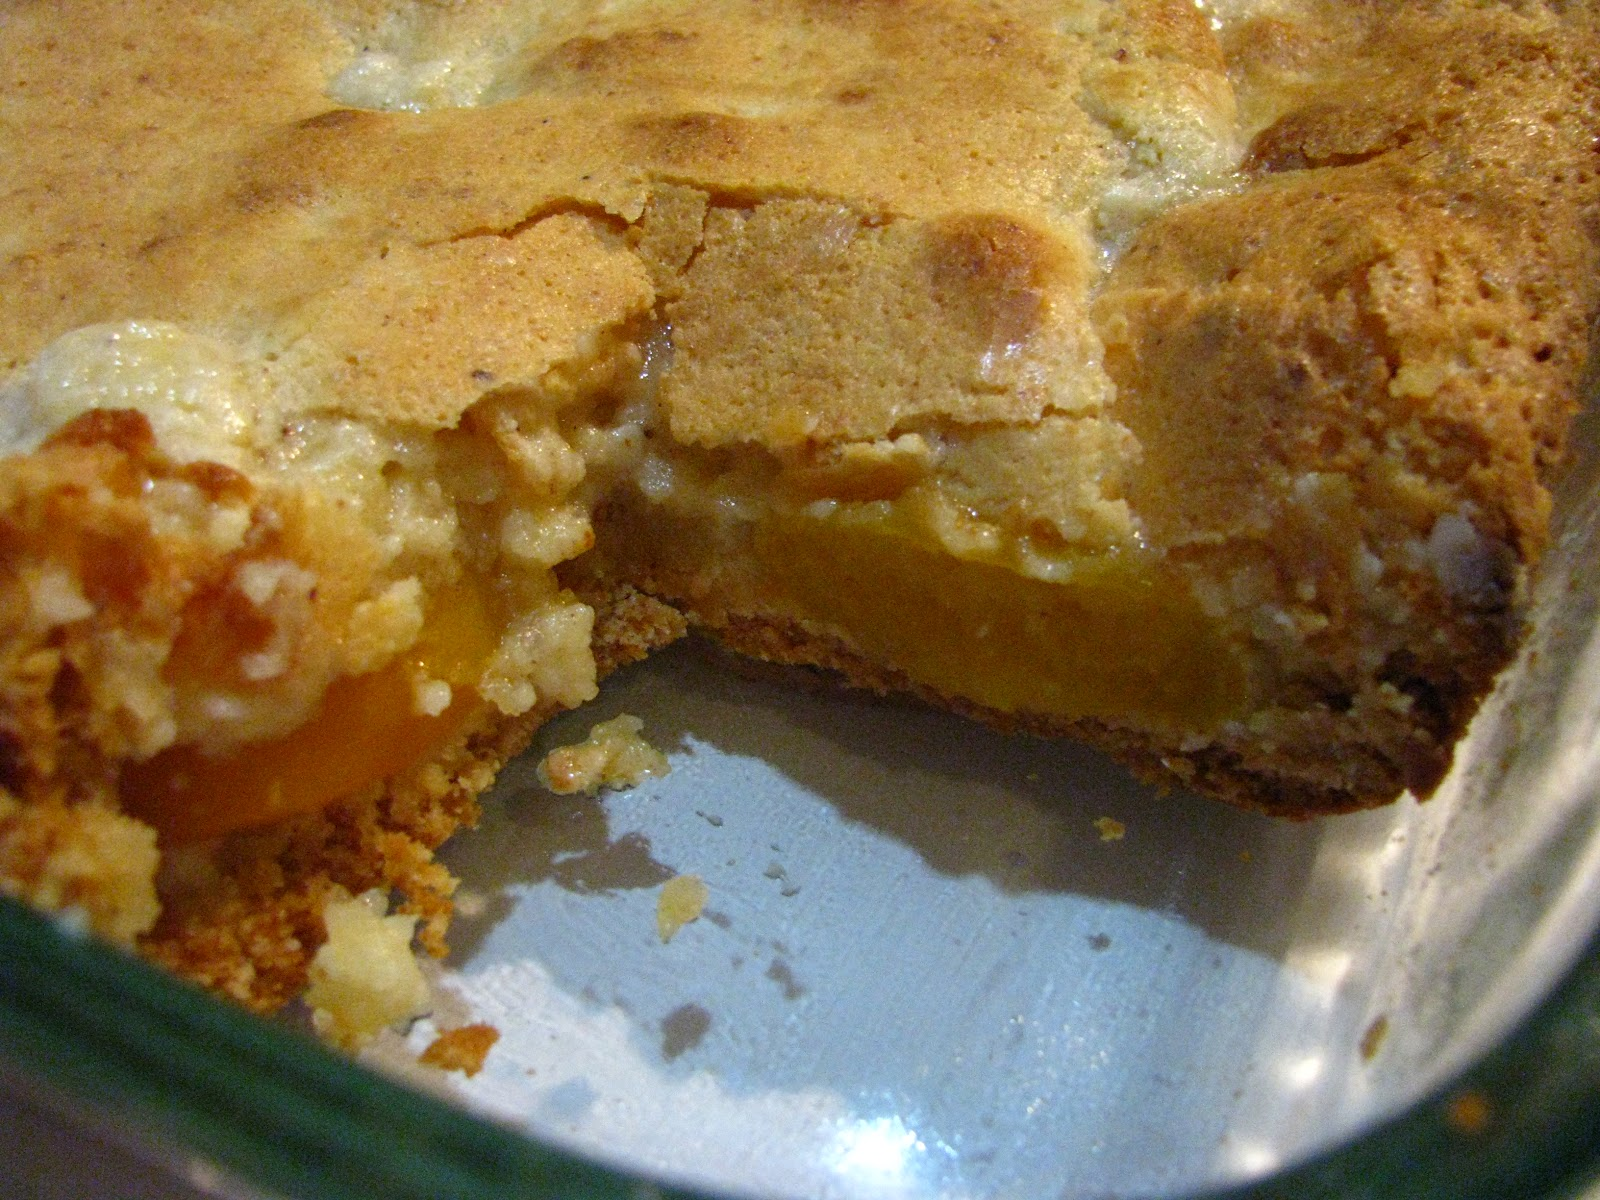 Gooey Peachy Butter Cake